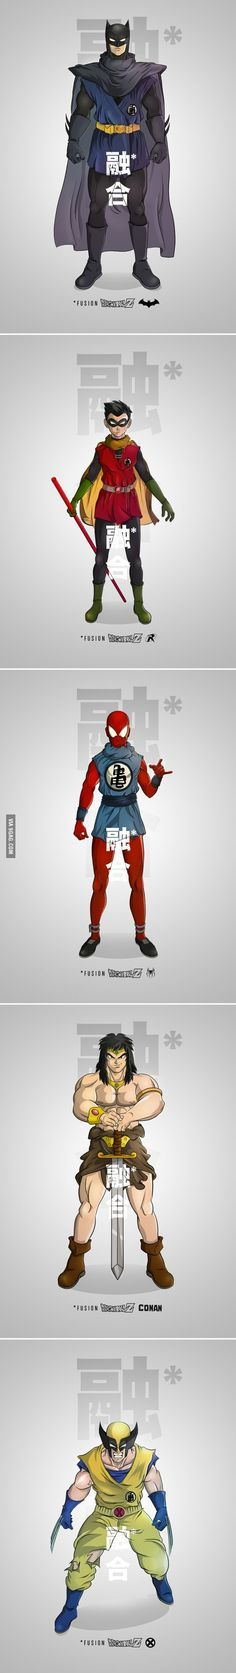 Dragon Ball Z Characters Fusion With Marvel/DC Superheroes